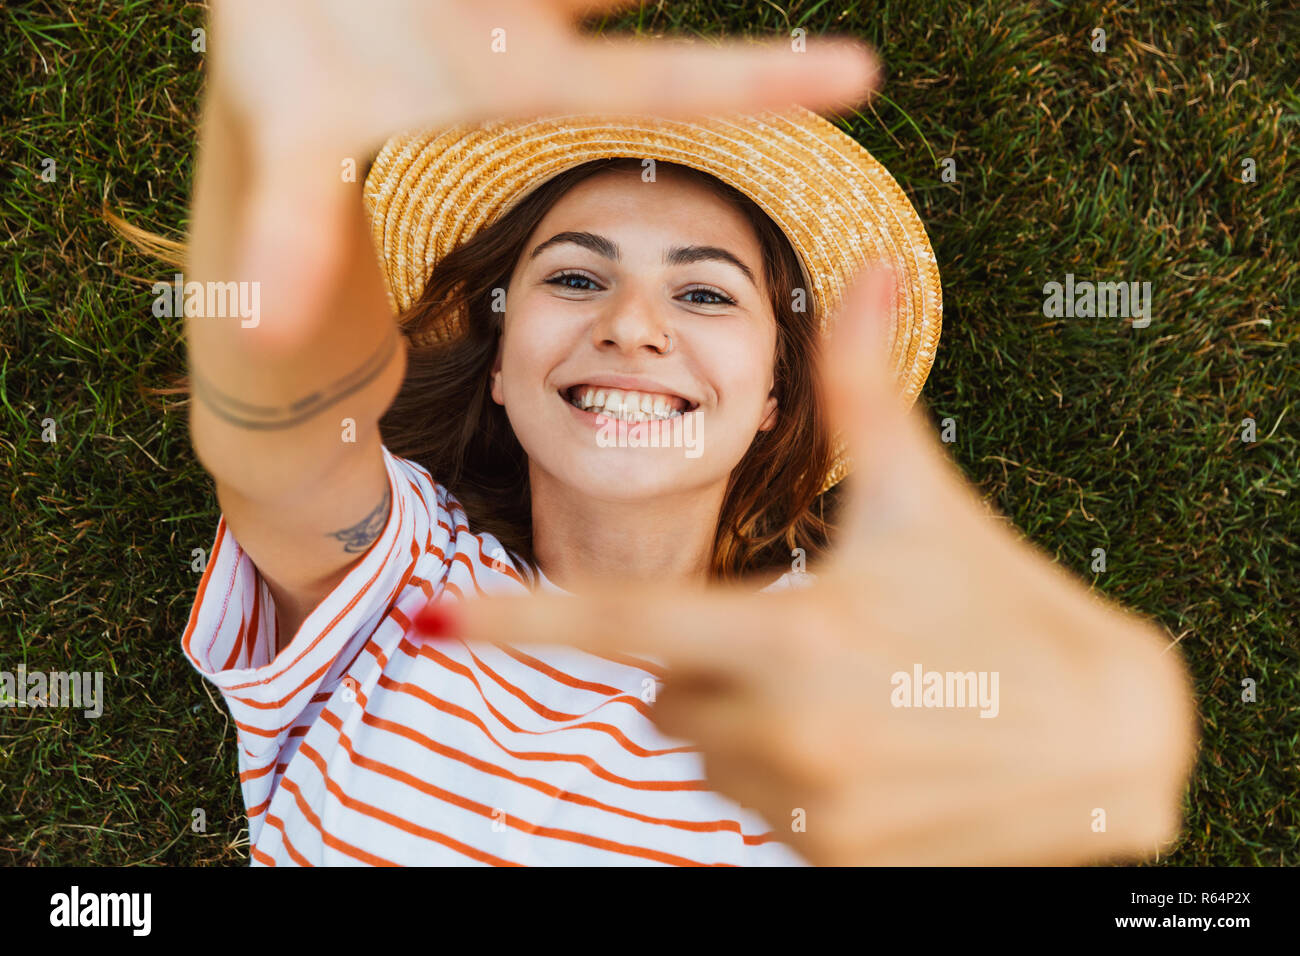 Top view of a cheerful young girl in summer hat laying on a grass, grimacing, outstretched hands - Stock Image